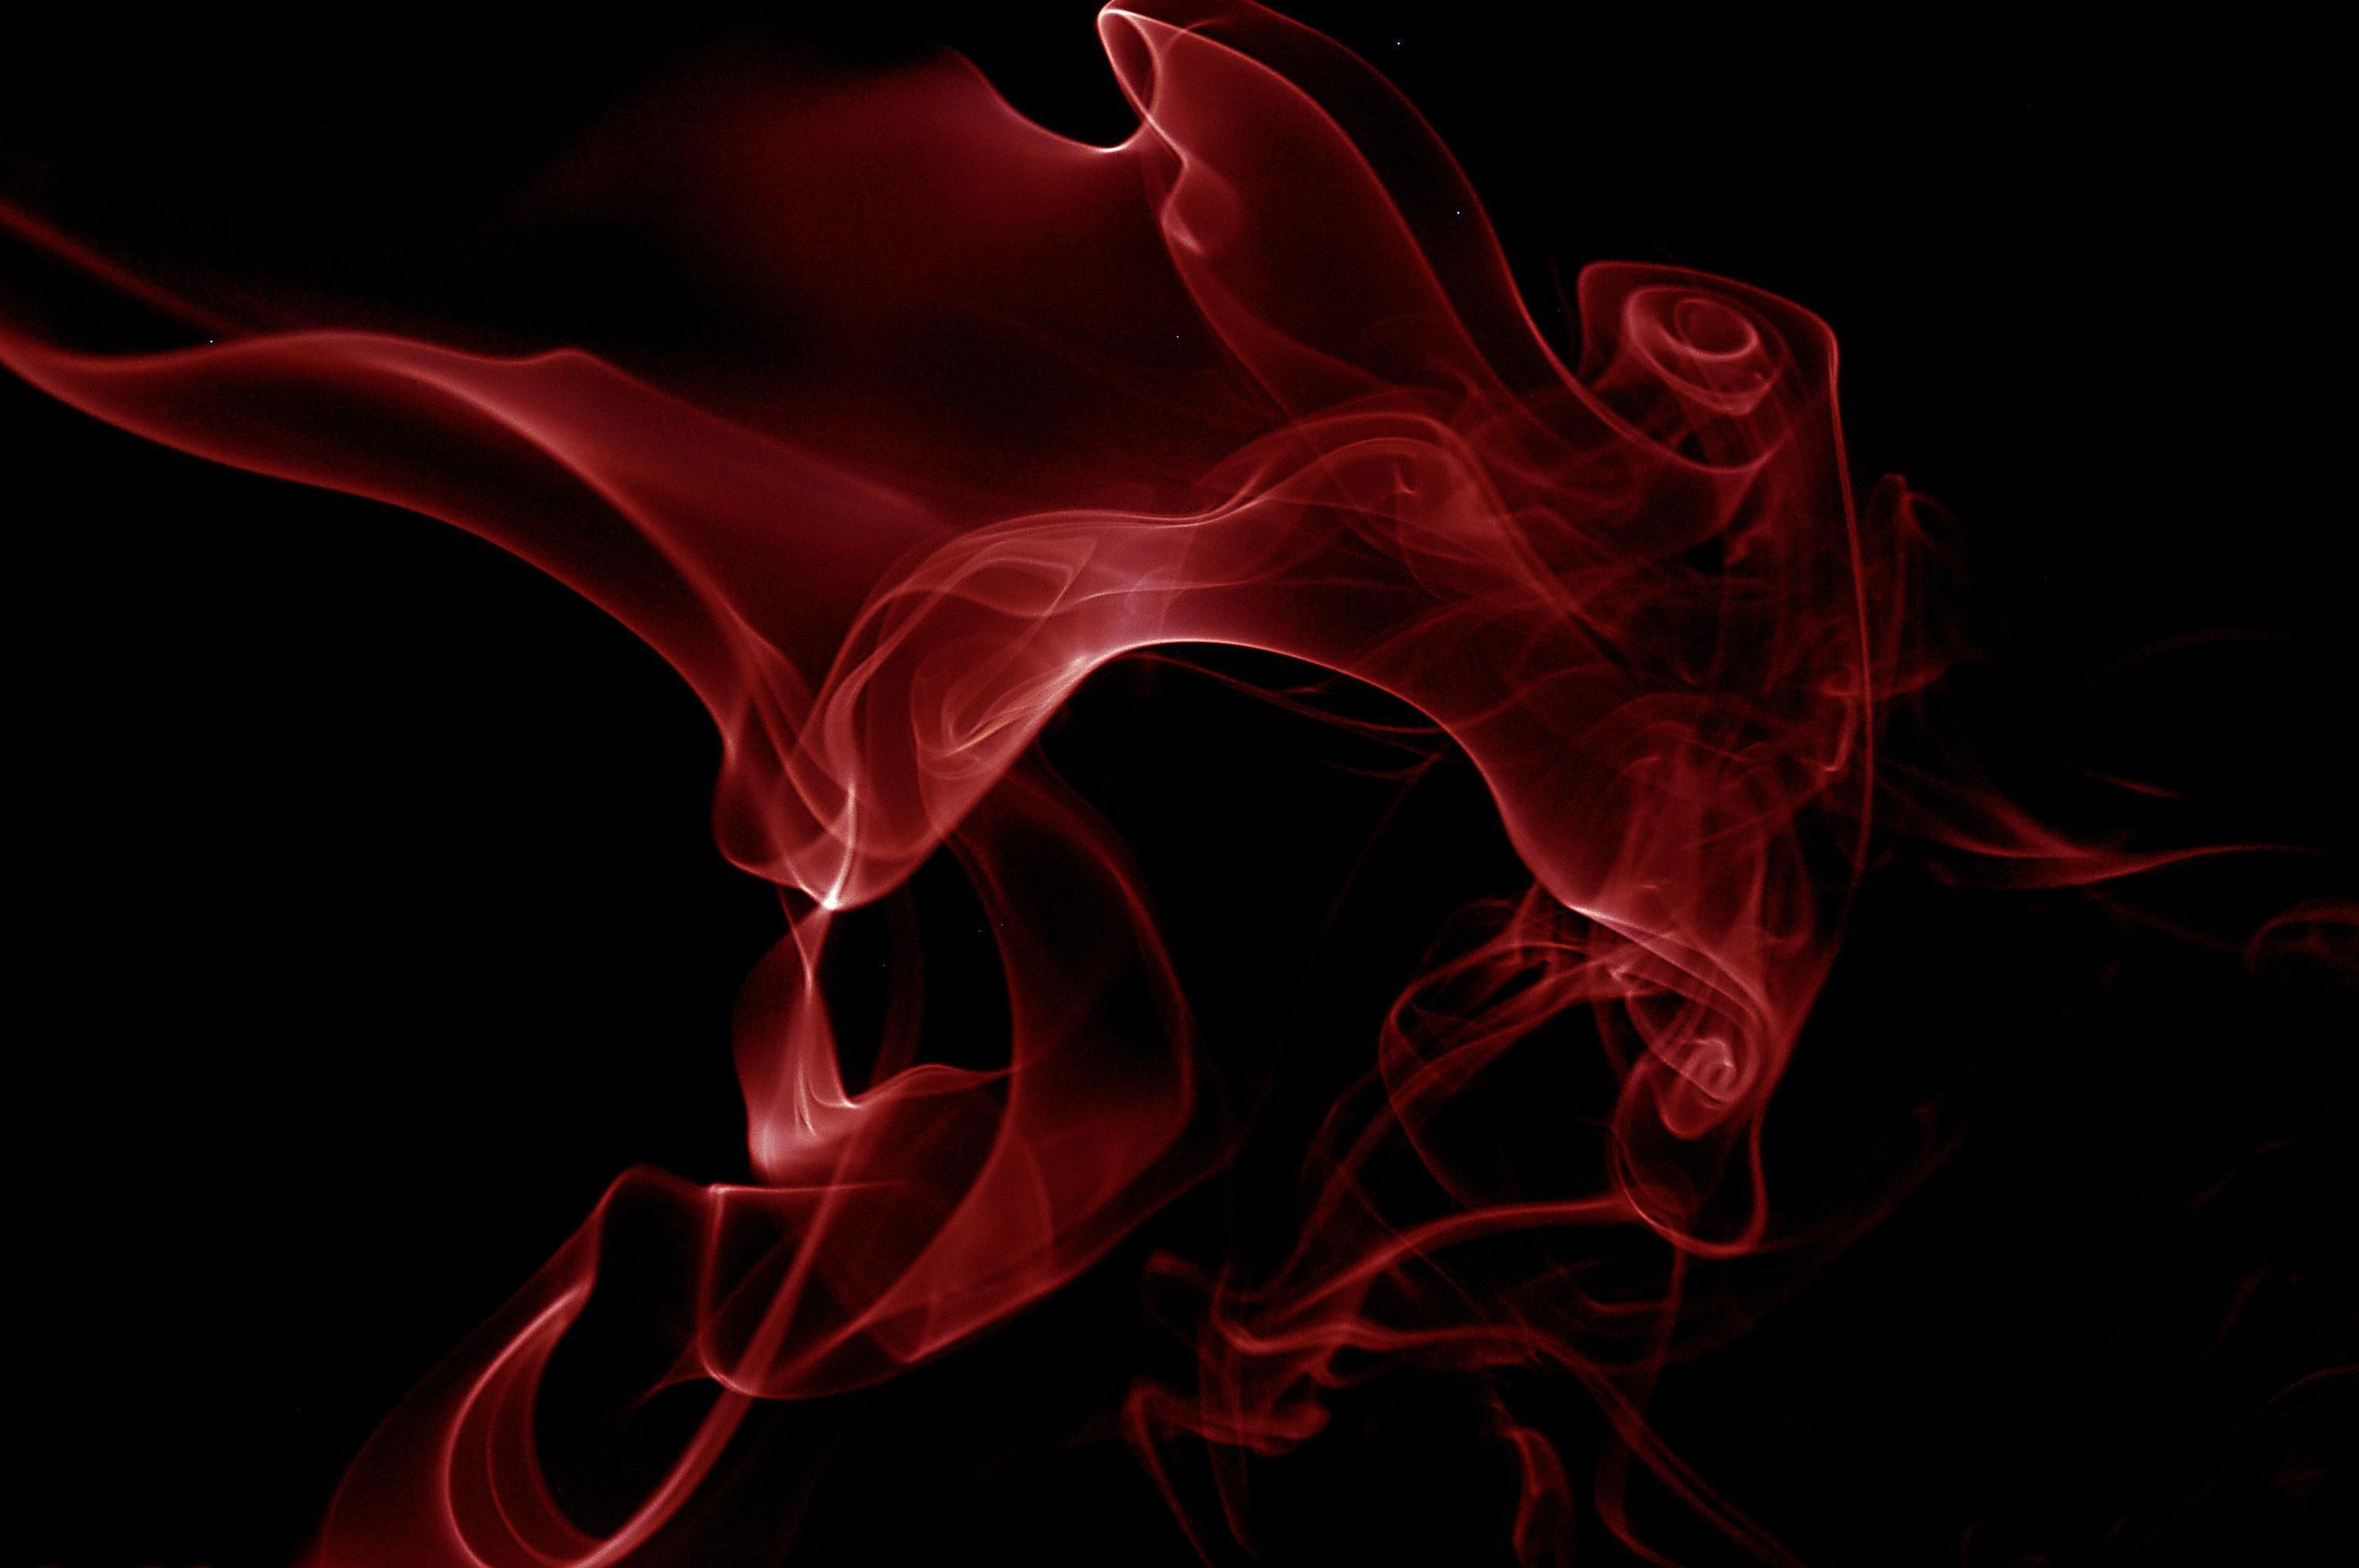 Red Smoke Wallpapers - Wallpaper Cave